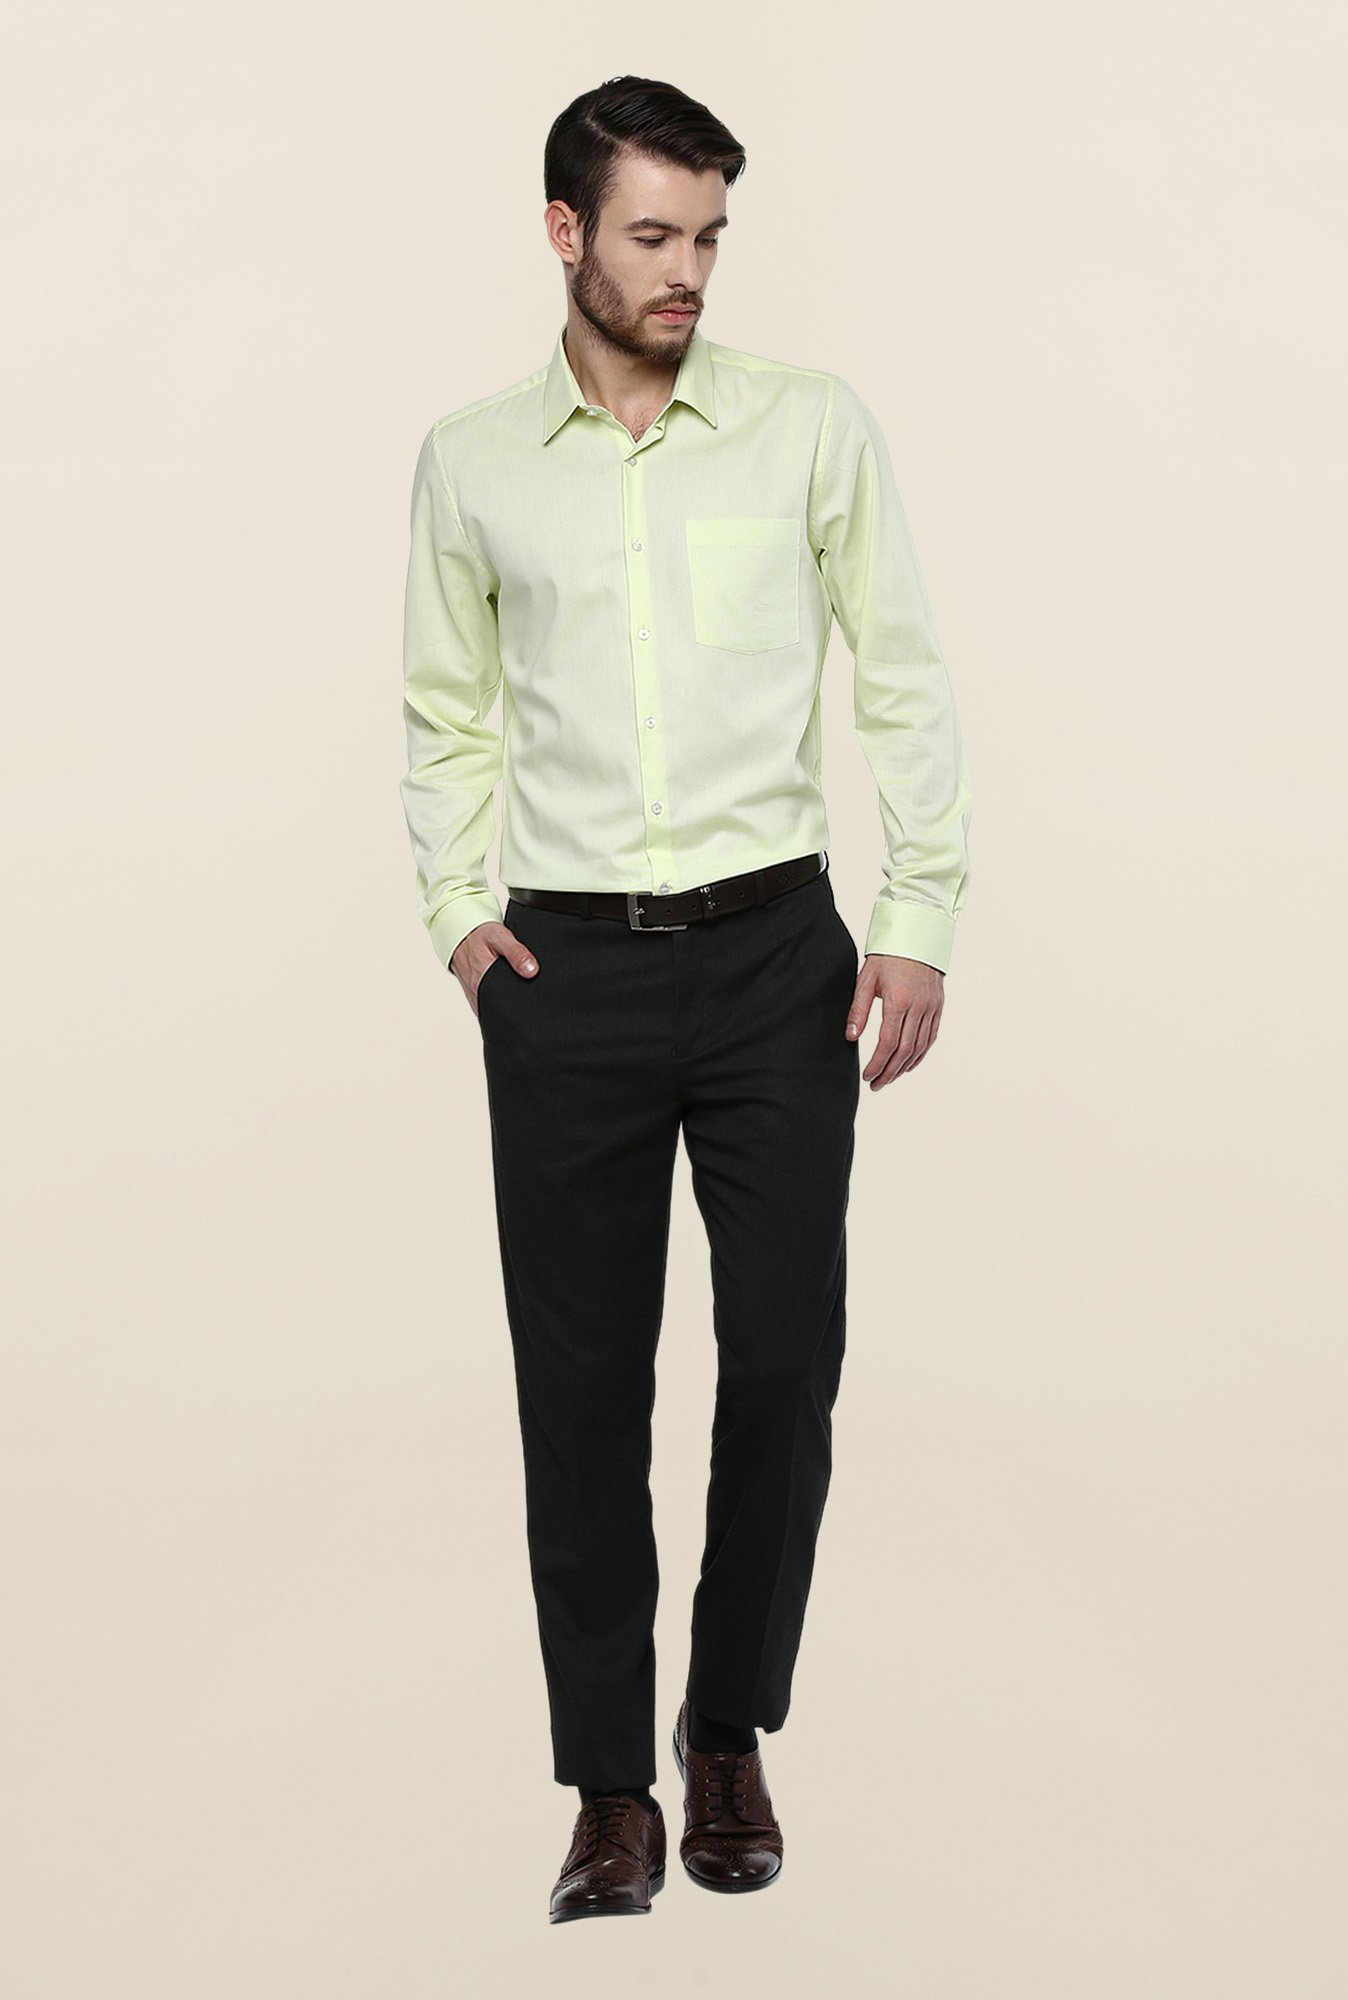 Turtle Lime Green Textured Formal Shirt